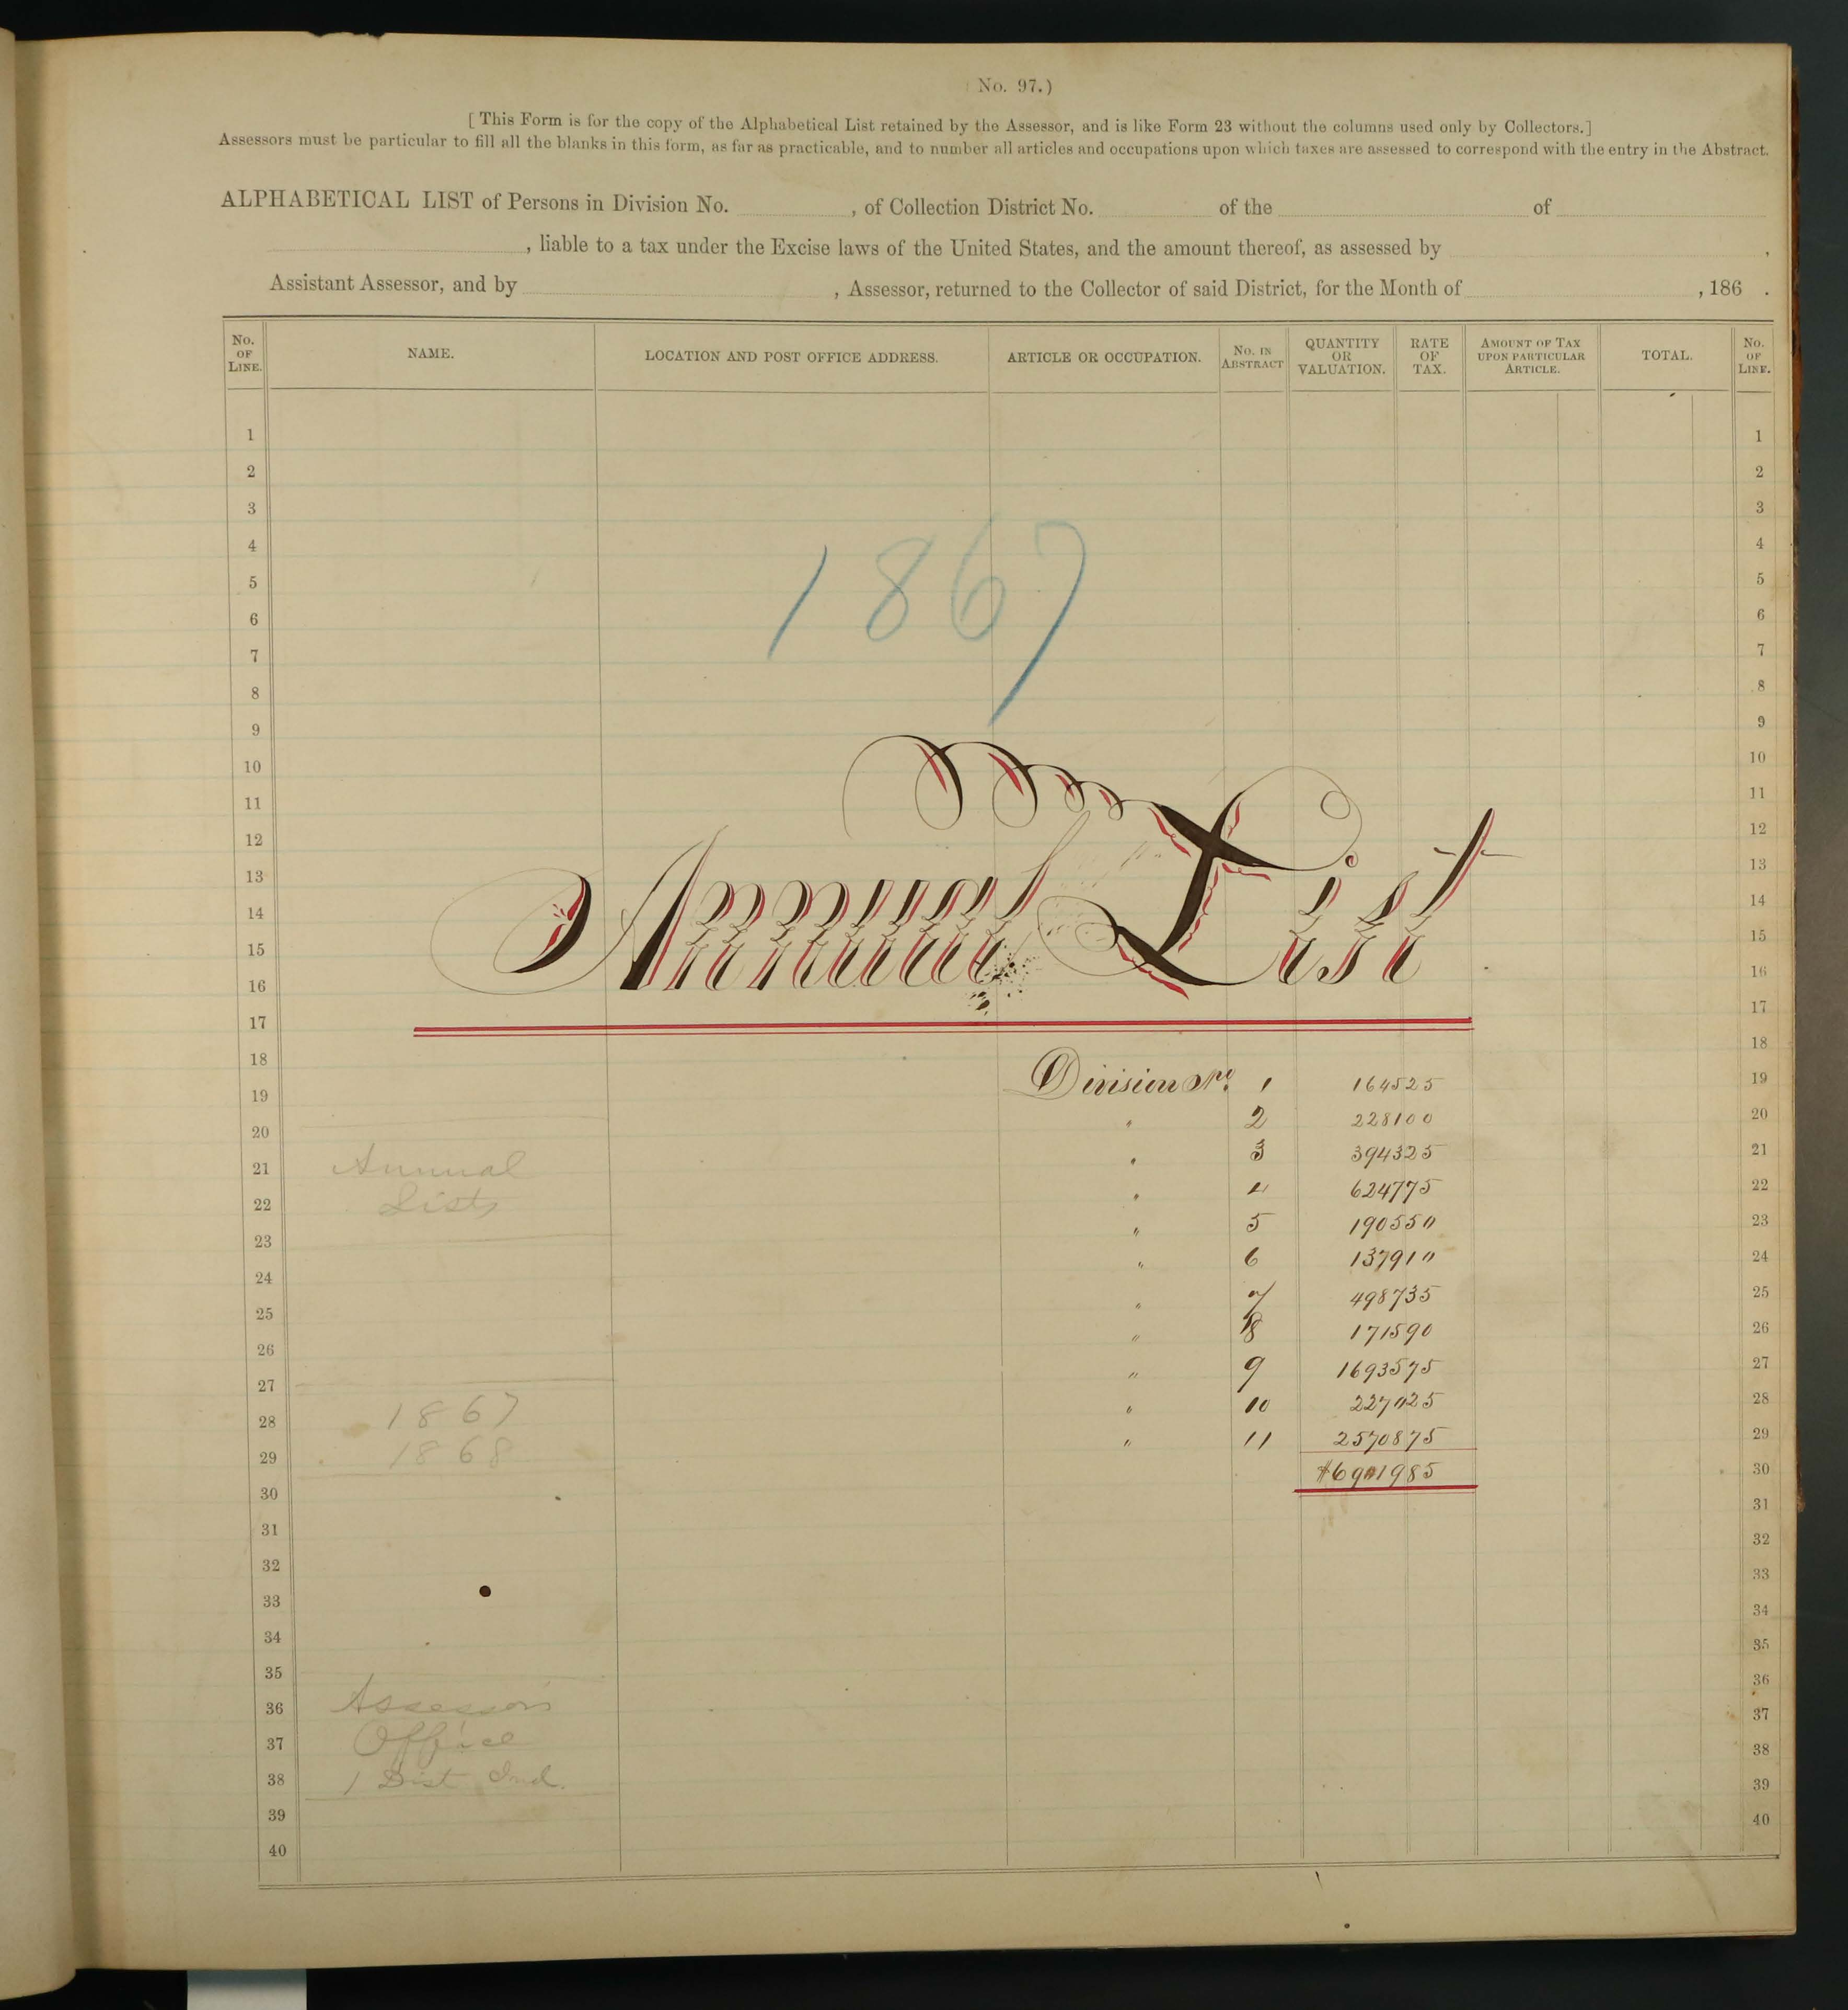 Image of annual list cover page.